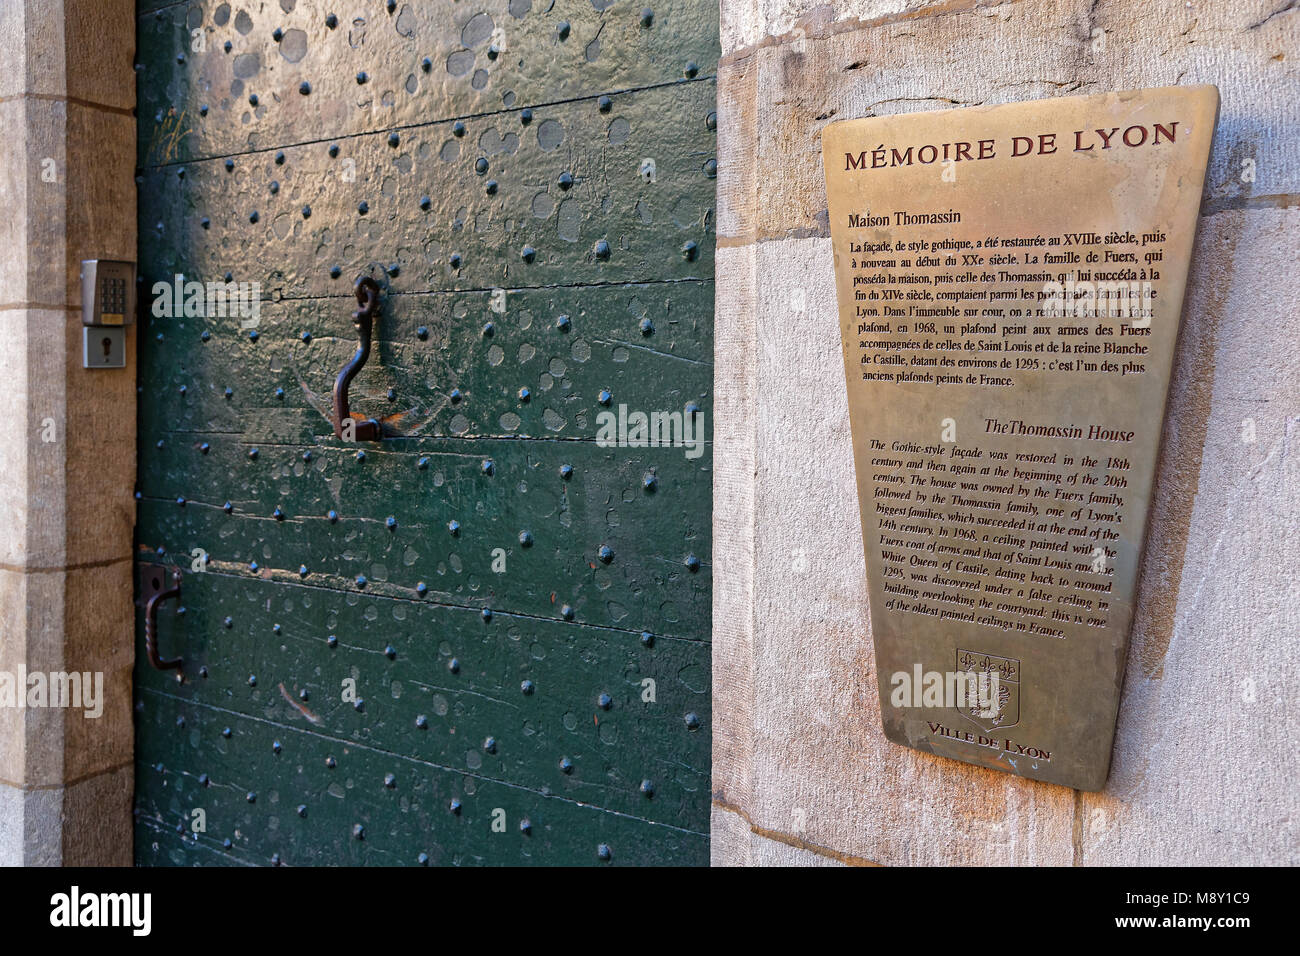 LYON, FRANCE, March 11, 2018 : Traboule information. Traboules (from Latin transambulare meaning 'to cross') - Stock Image